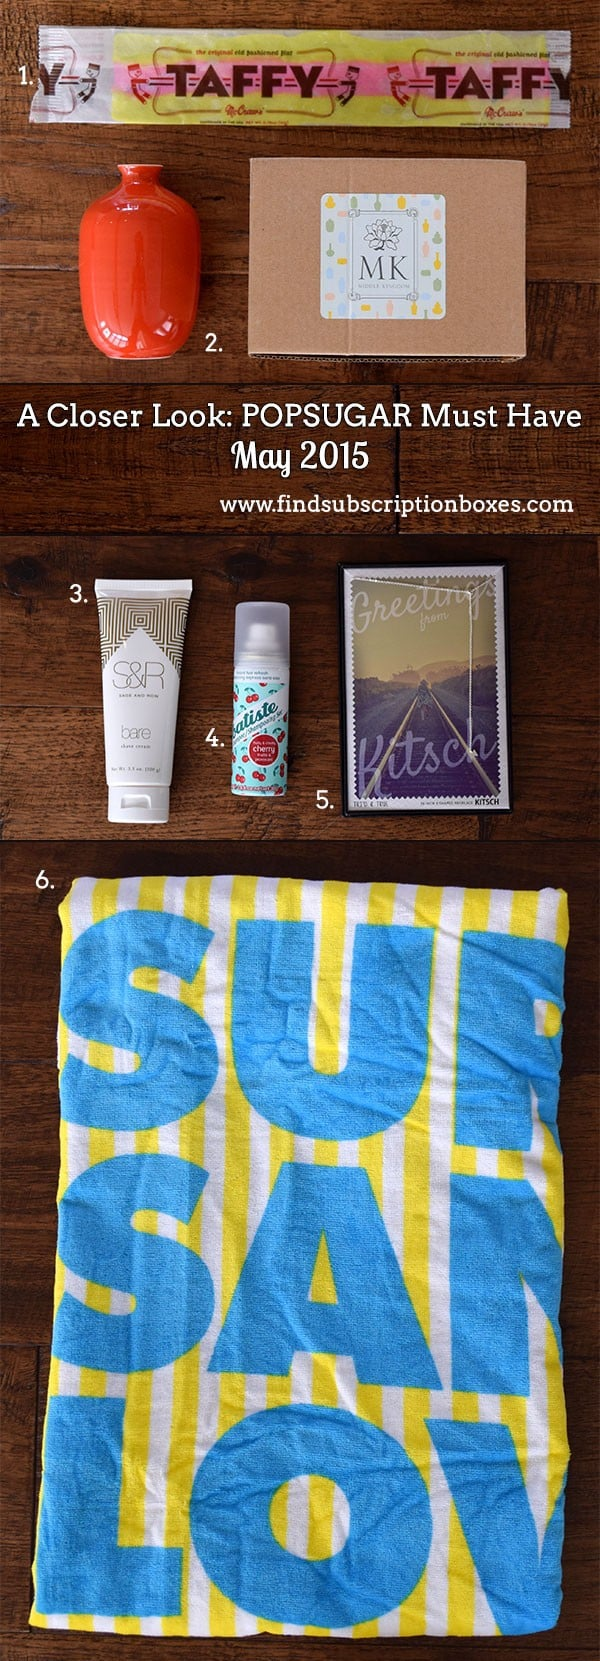 POPSUGAR May 2015 Must Have Box - Inside the Box